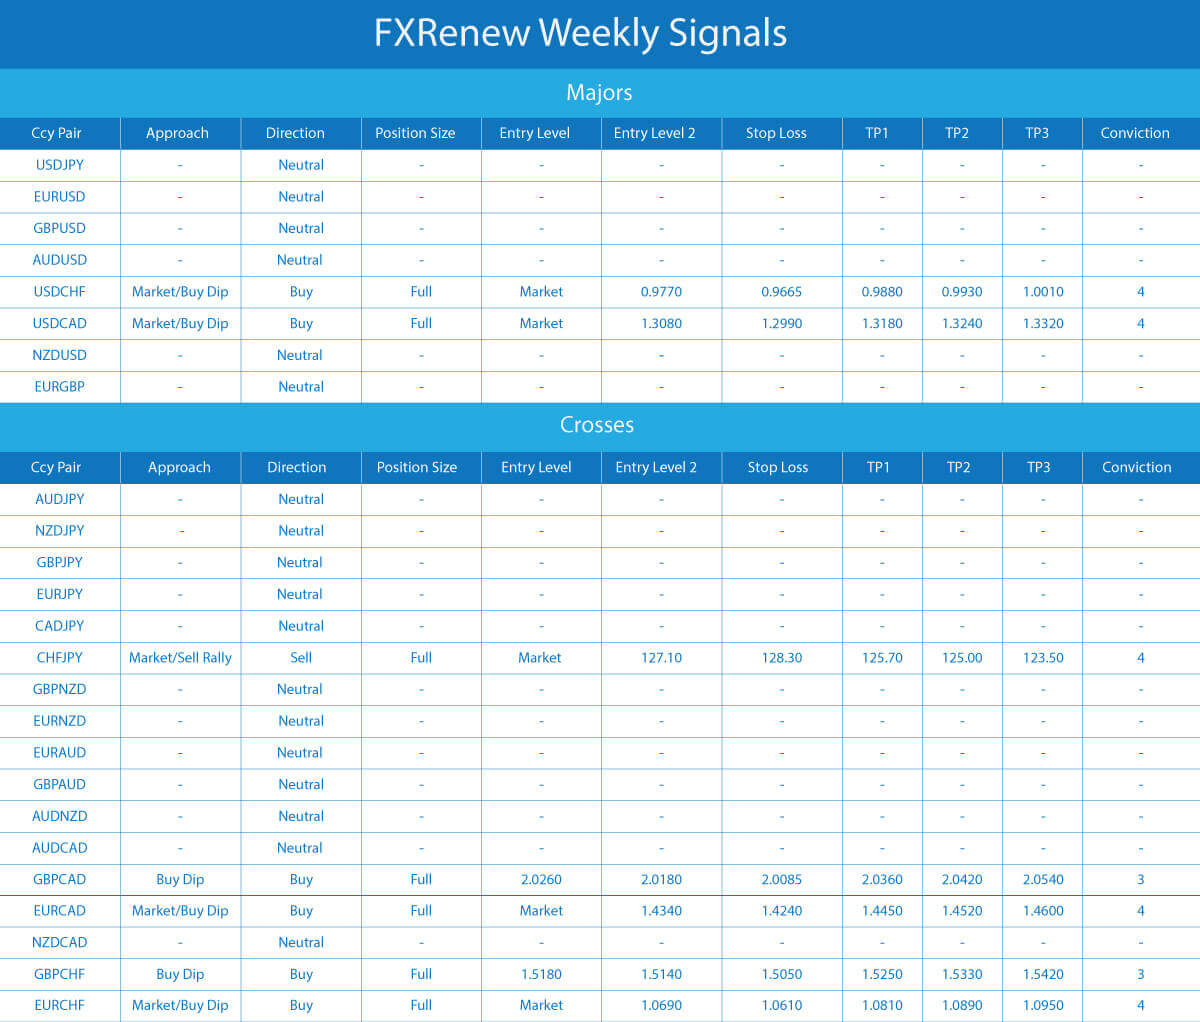 Fxrenew-Weekly-Signals-10-august-15